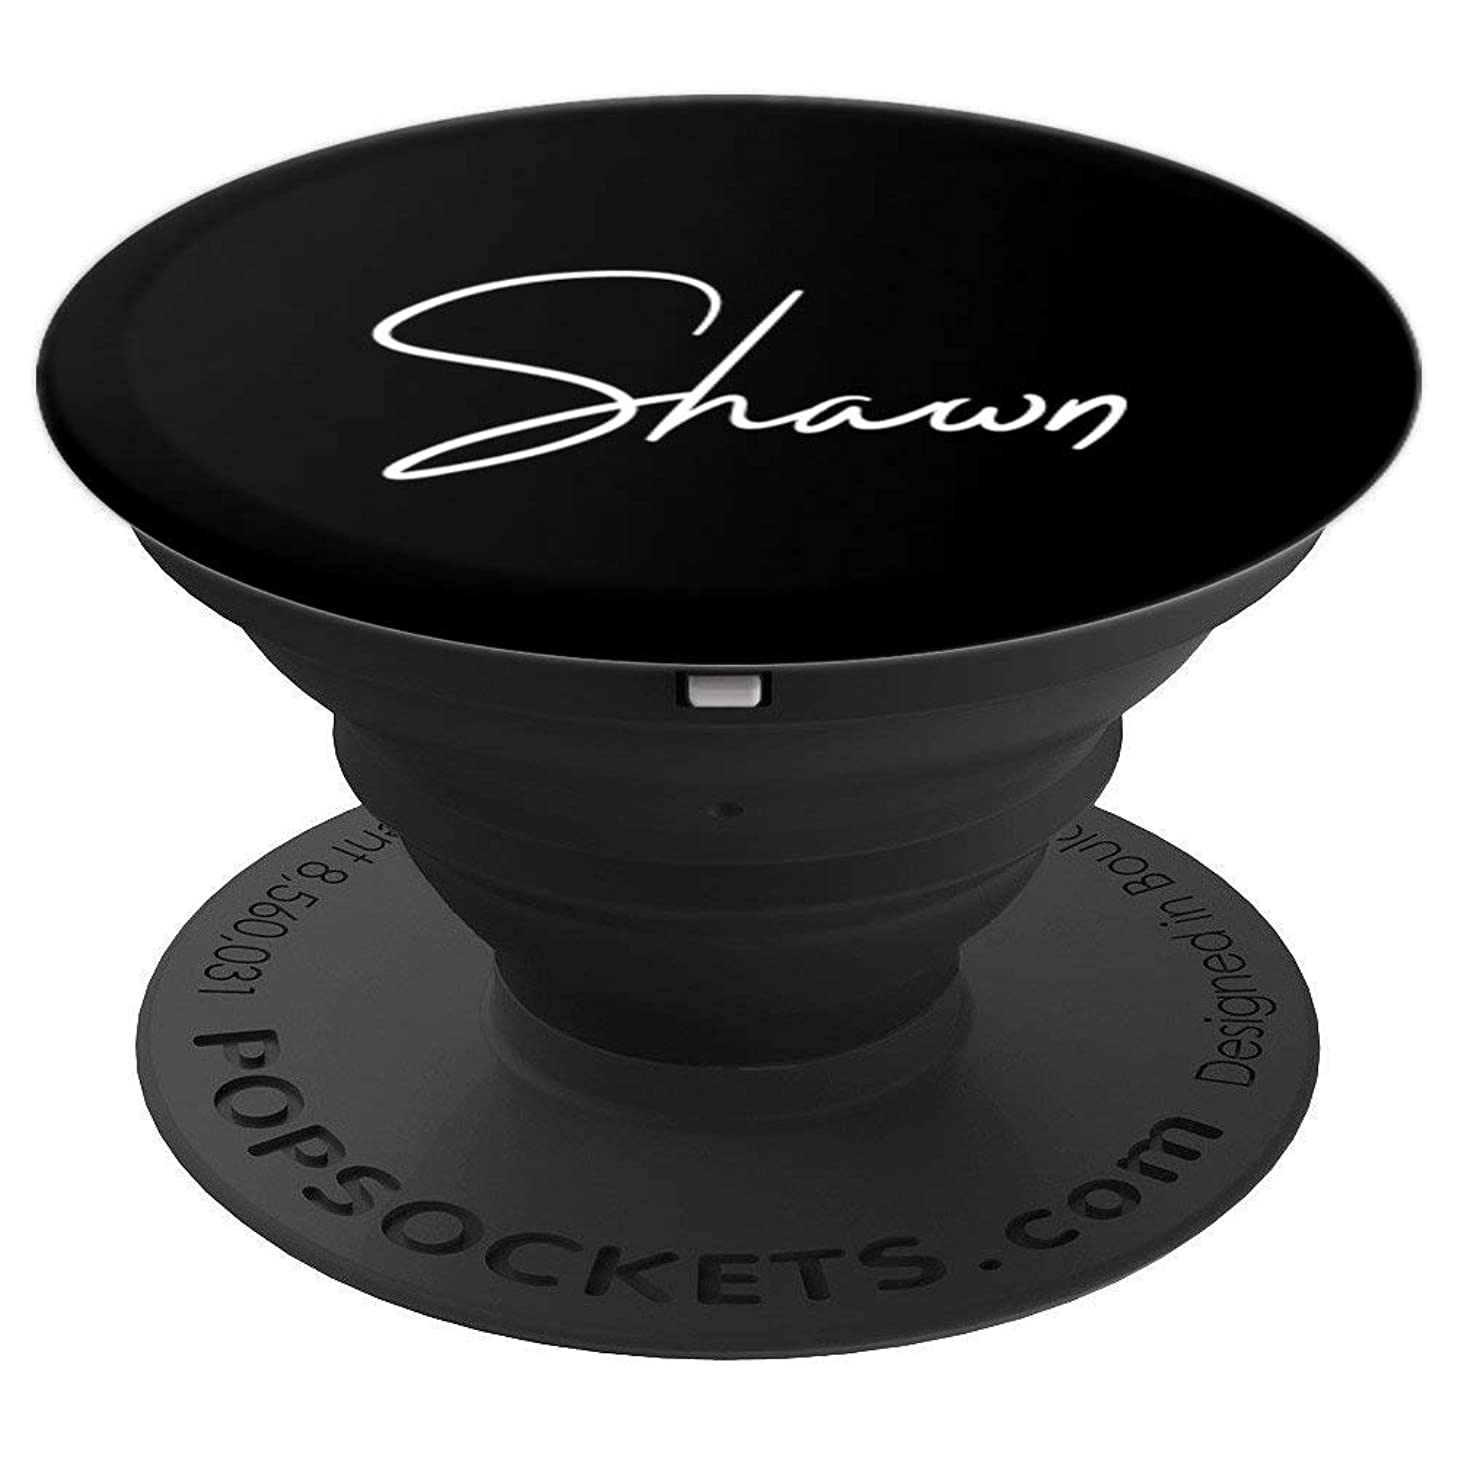 Shawn Name White on Black - Shawn - PopSockets Grip and Stand for Phones and Tablets